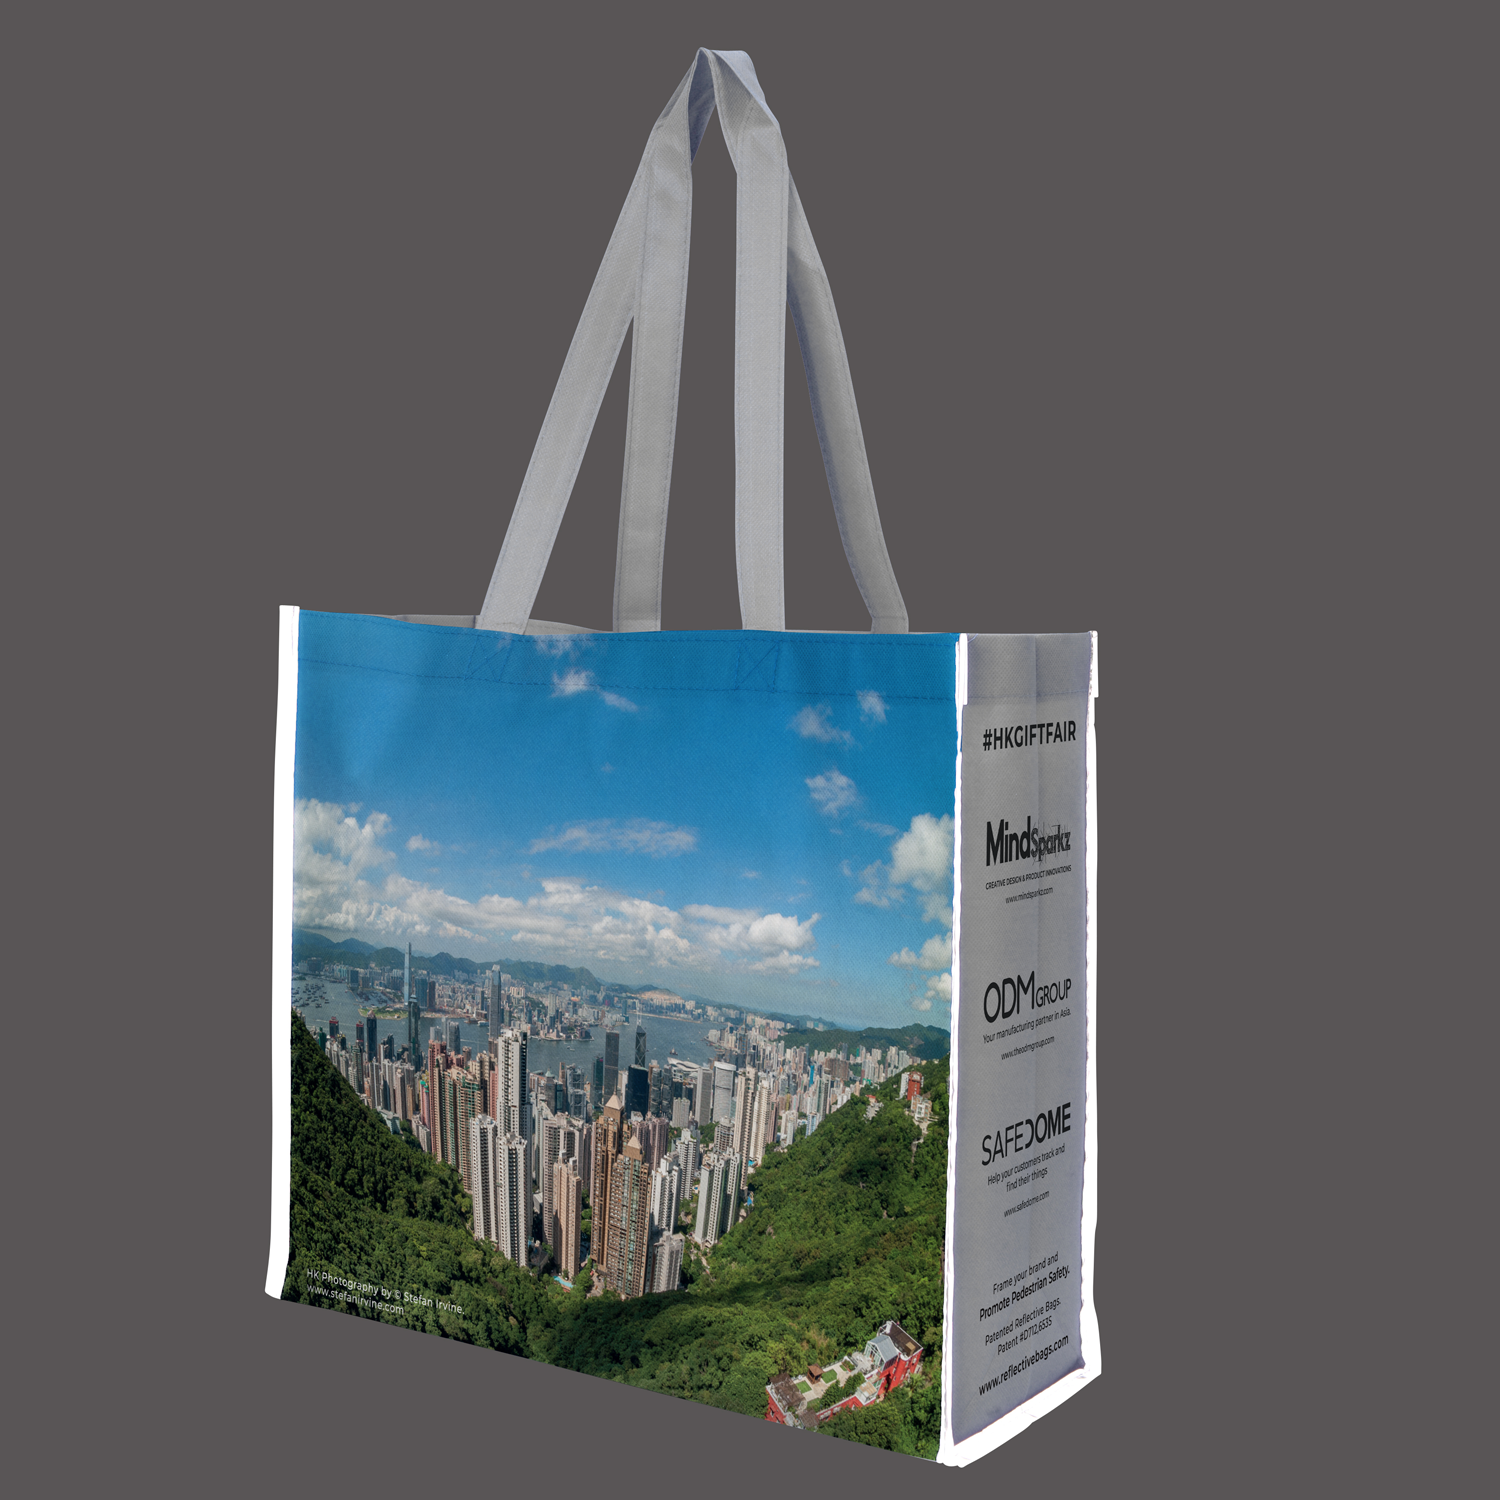 ODM's Patented Reflective Shopping Bags: The Manufacturing Process